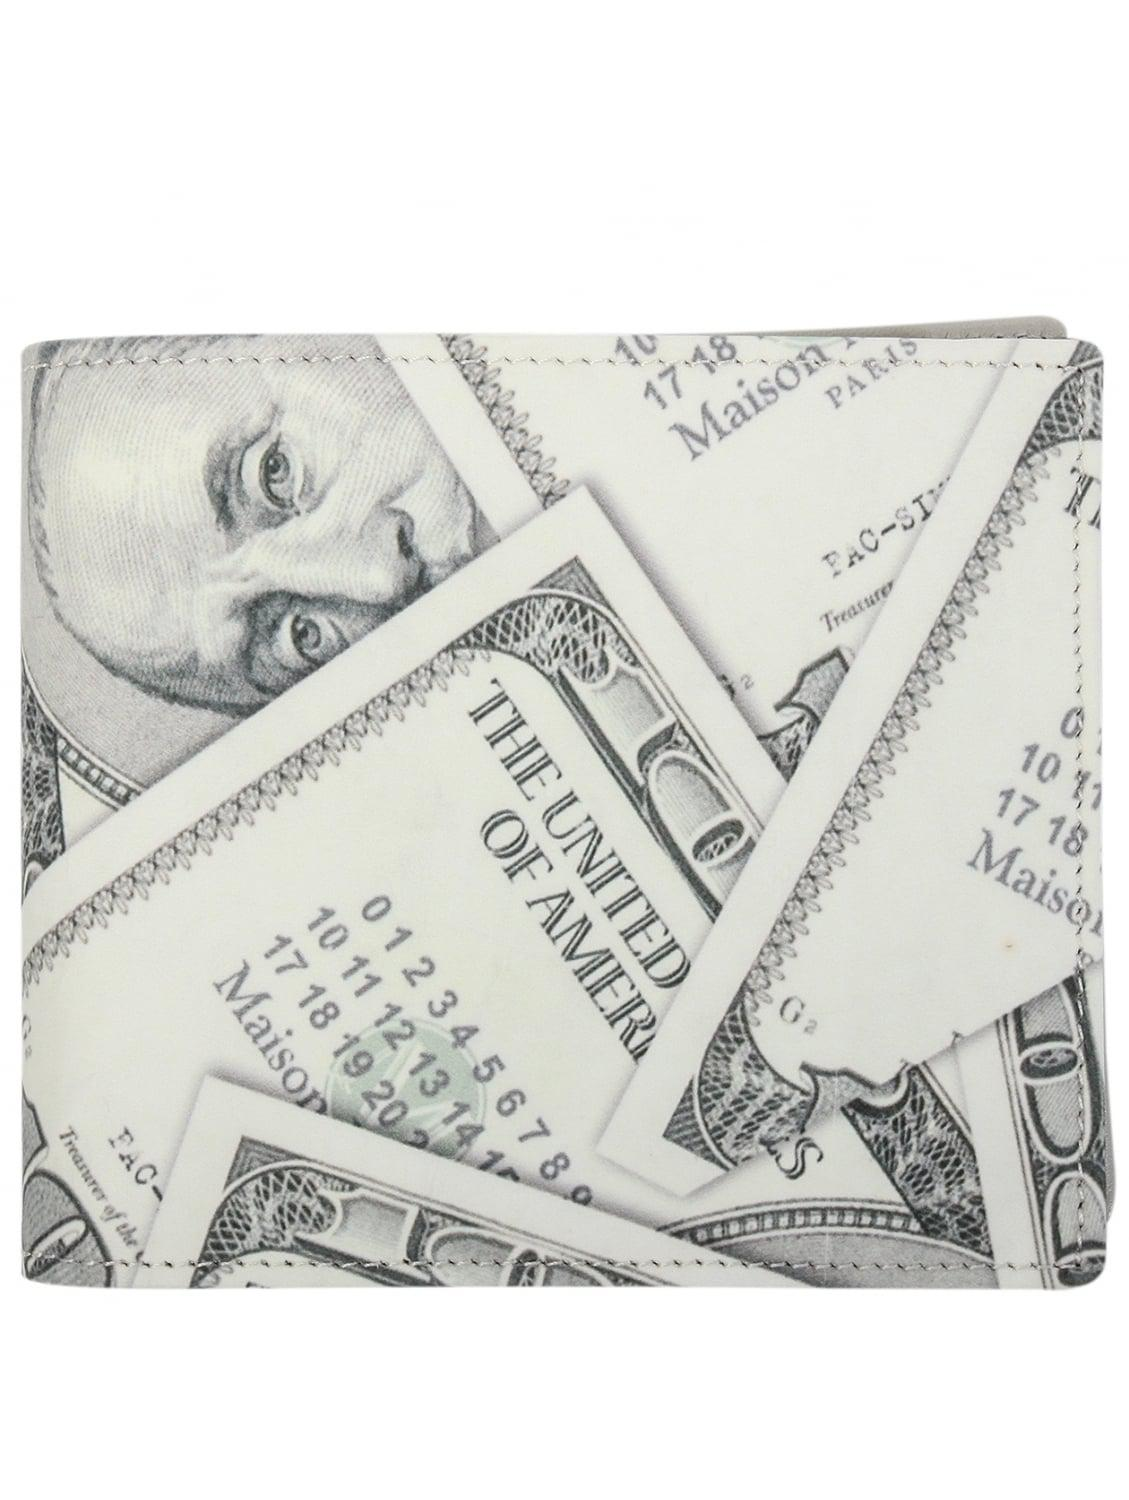 549f0dc9b03f27 Maison Margiela Dollar Print Bi Fold Wallet Off White In For. Maison  Margiela 11 Bills Money Wallet Size One